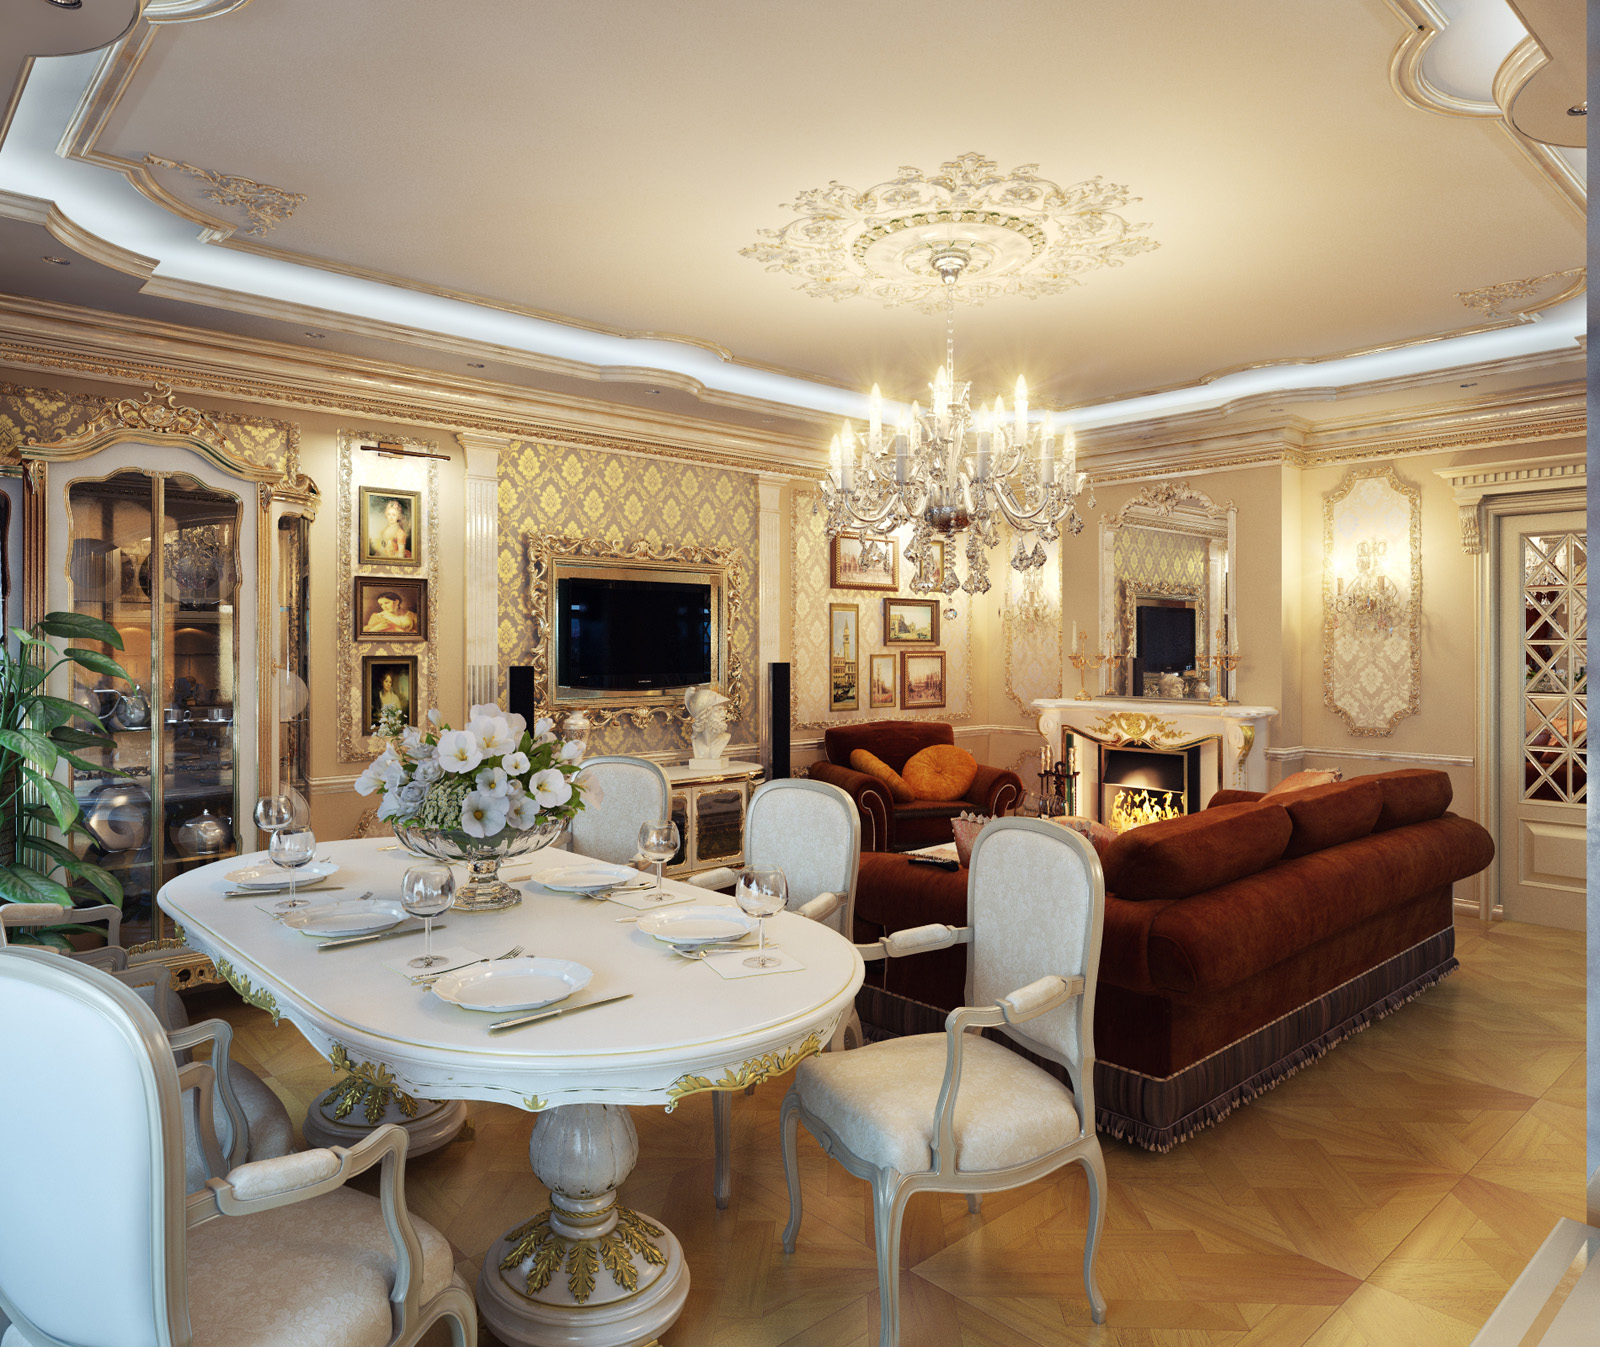 Dining And Living Room Furniture: Royal Home Designs !